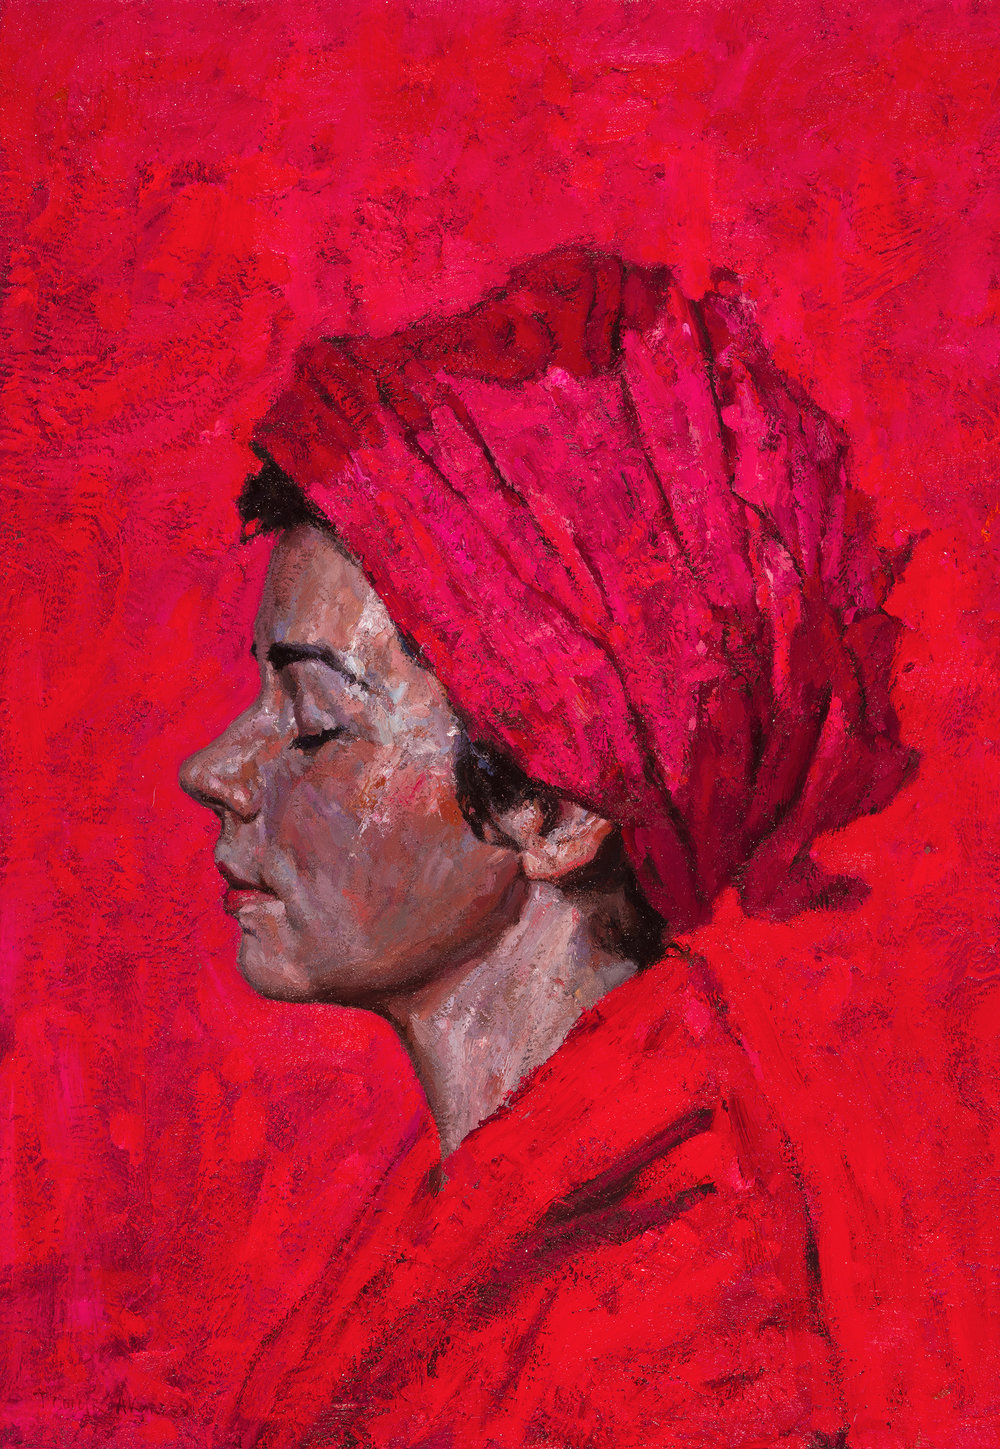 """Red on Red Size: 14"""" x 20"""", Oil on Linen  Sold, Through Paul & Scott Gallery"""